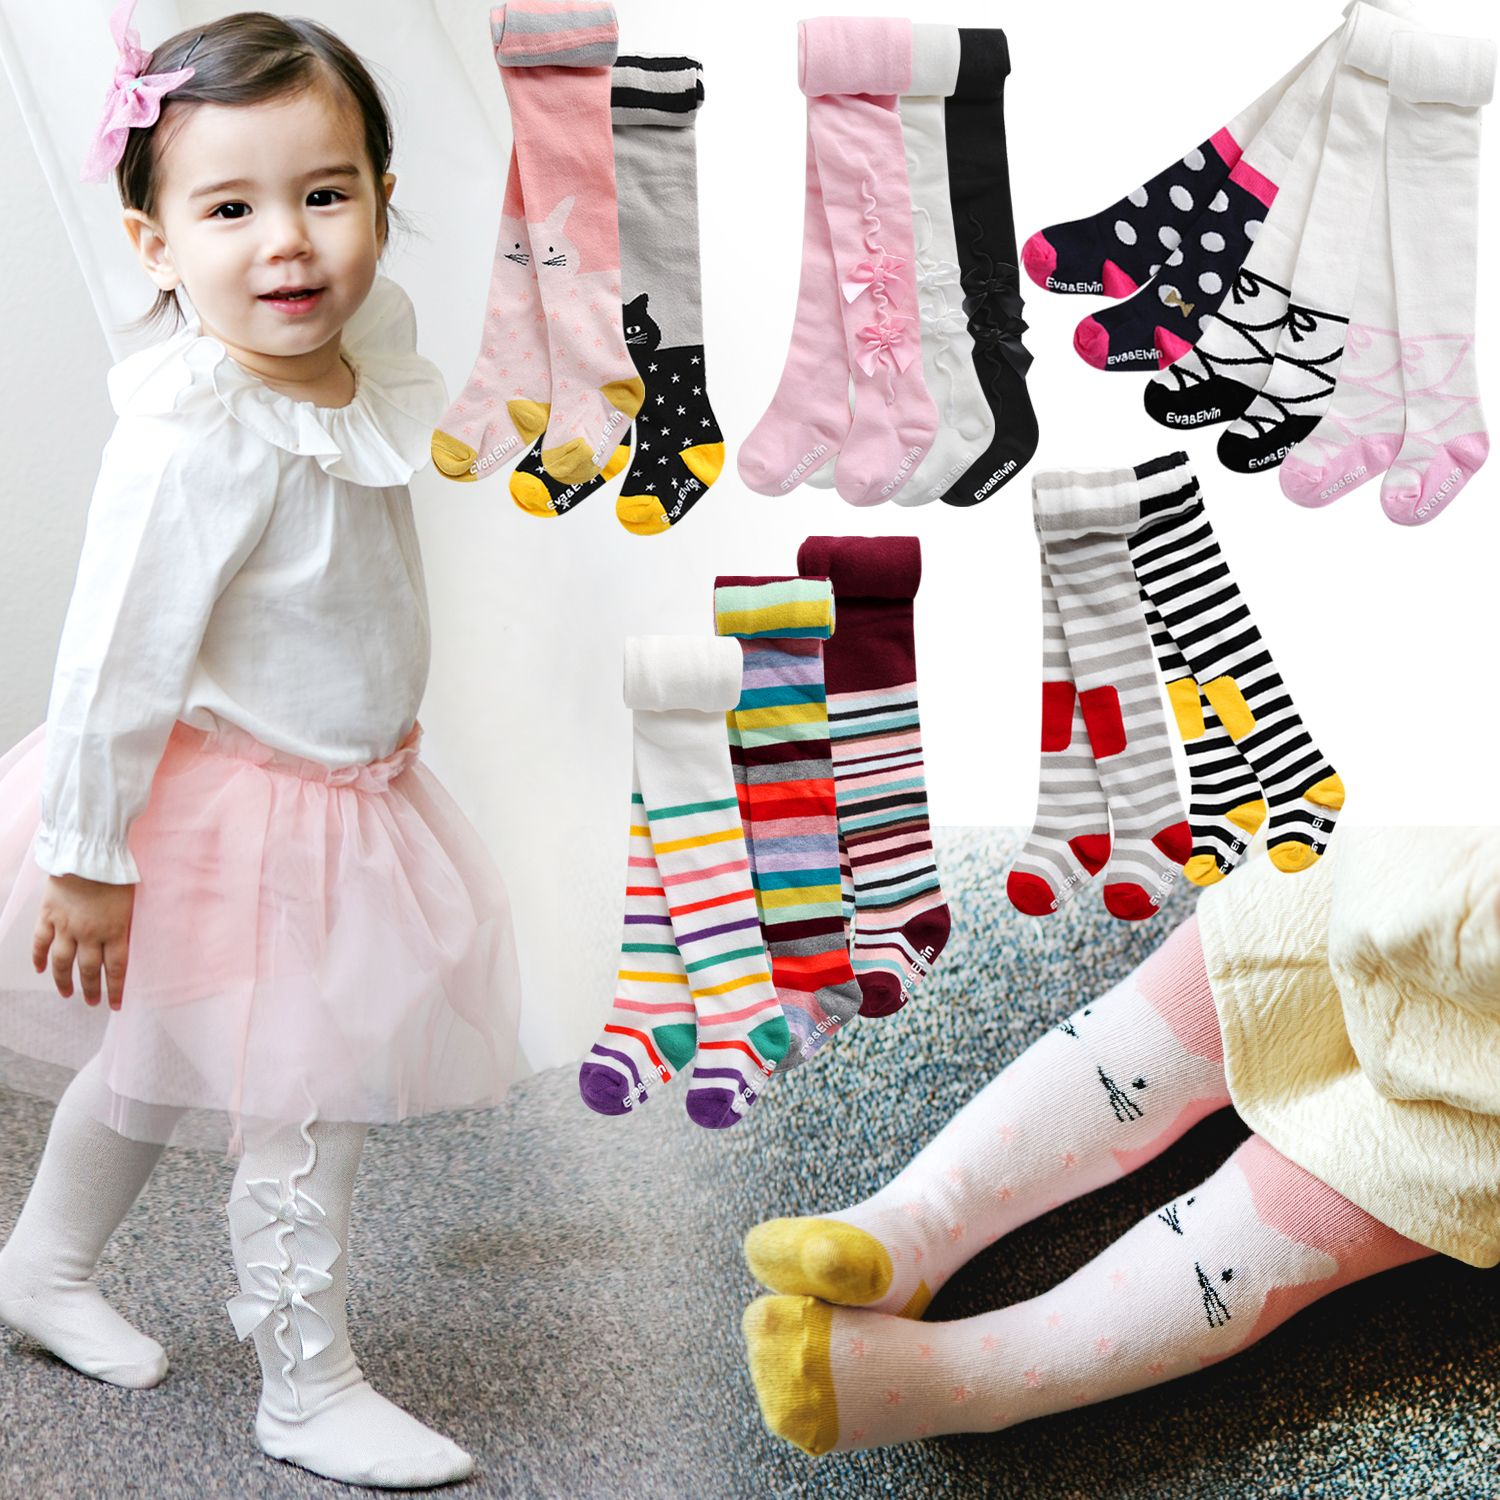 Details About Vaenait Baby Korea Kids Girls Tights Trousers Socks Cute Tights Set 100 210mm